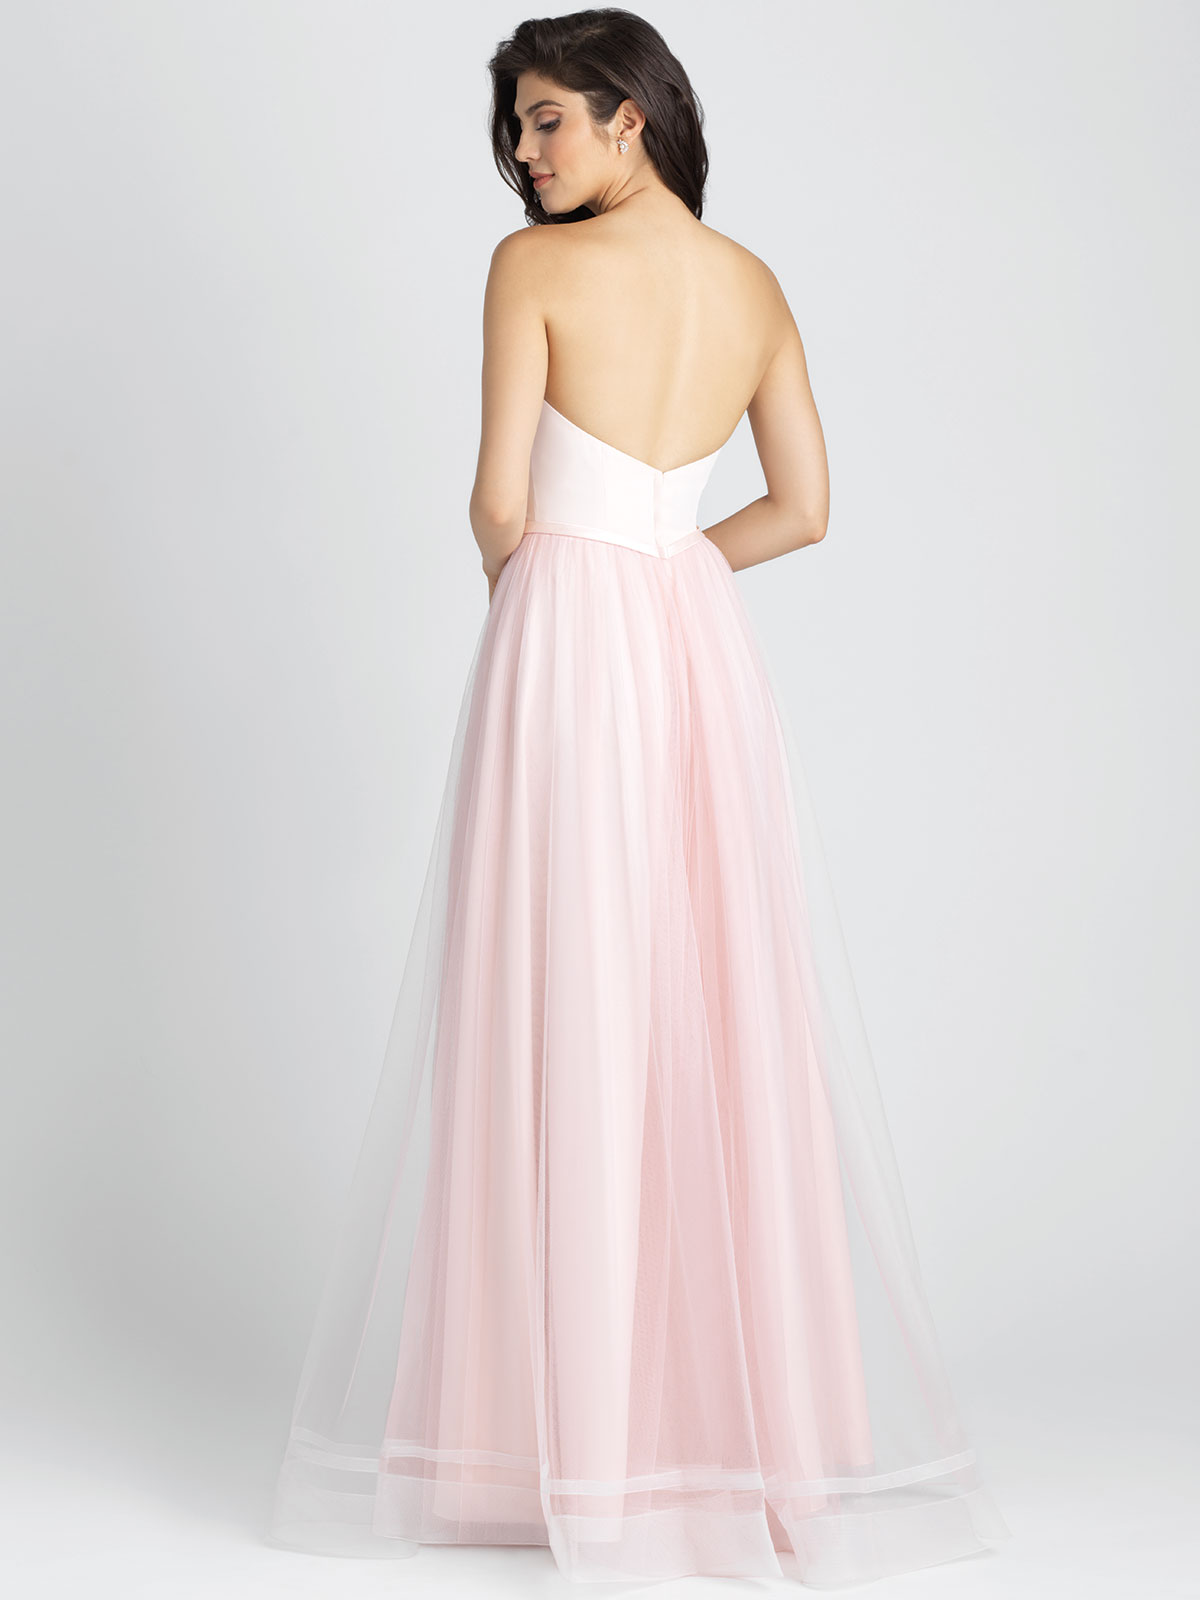 Allure 1509 sweetheart a line bridesmaid dressdimitradesigns tulle a line allure bridesmaid dress 1509 ombrellifo Images